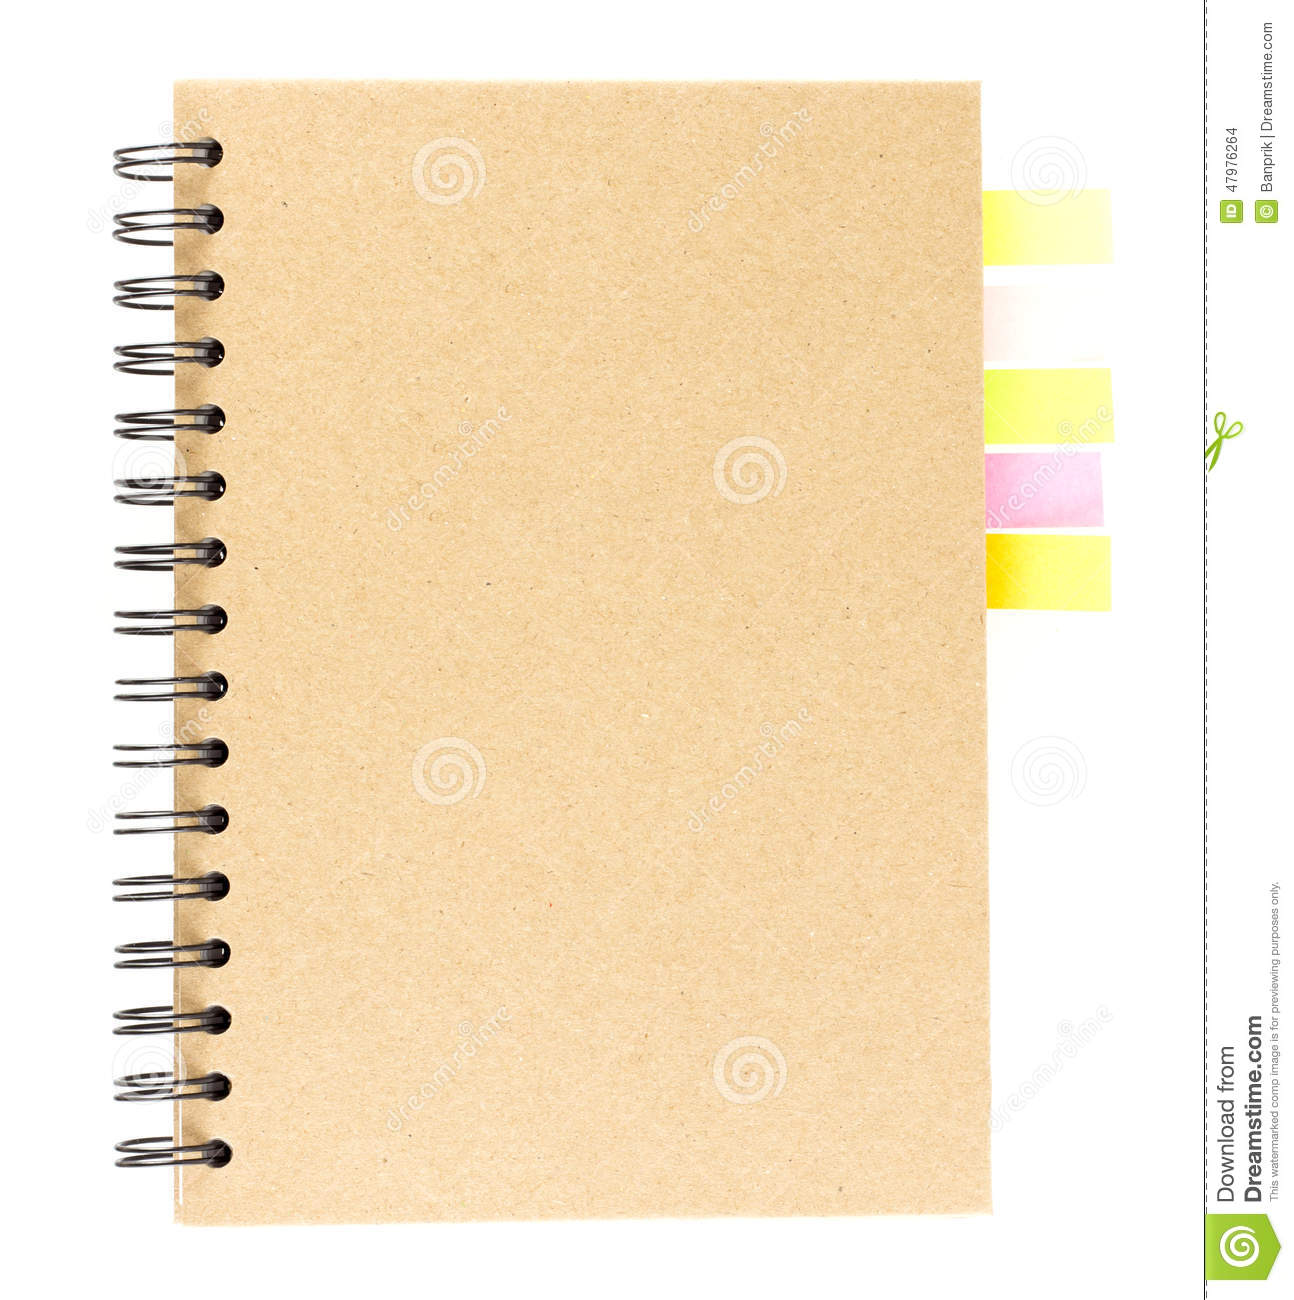 Book Cover Design Isolated Over Colorful Background : Cover of spiral notebook on white with colorful note paper